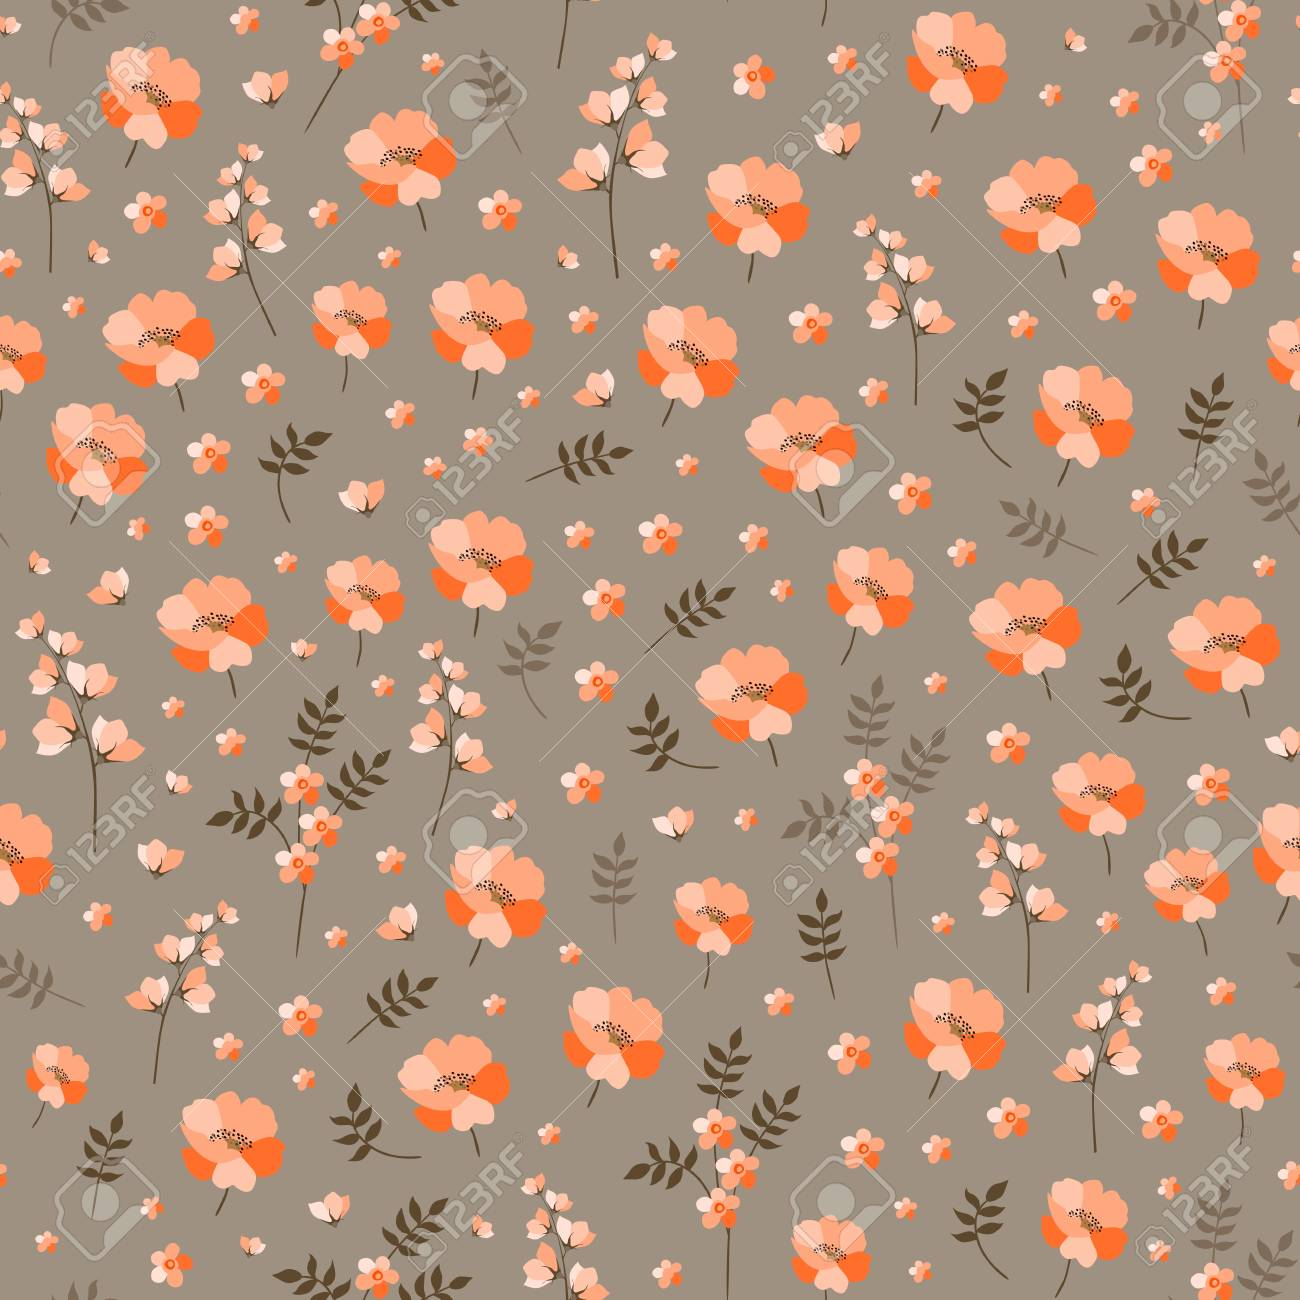 Seamless Ditsy Floral Pattern With Little Orange Flowers Vector